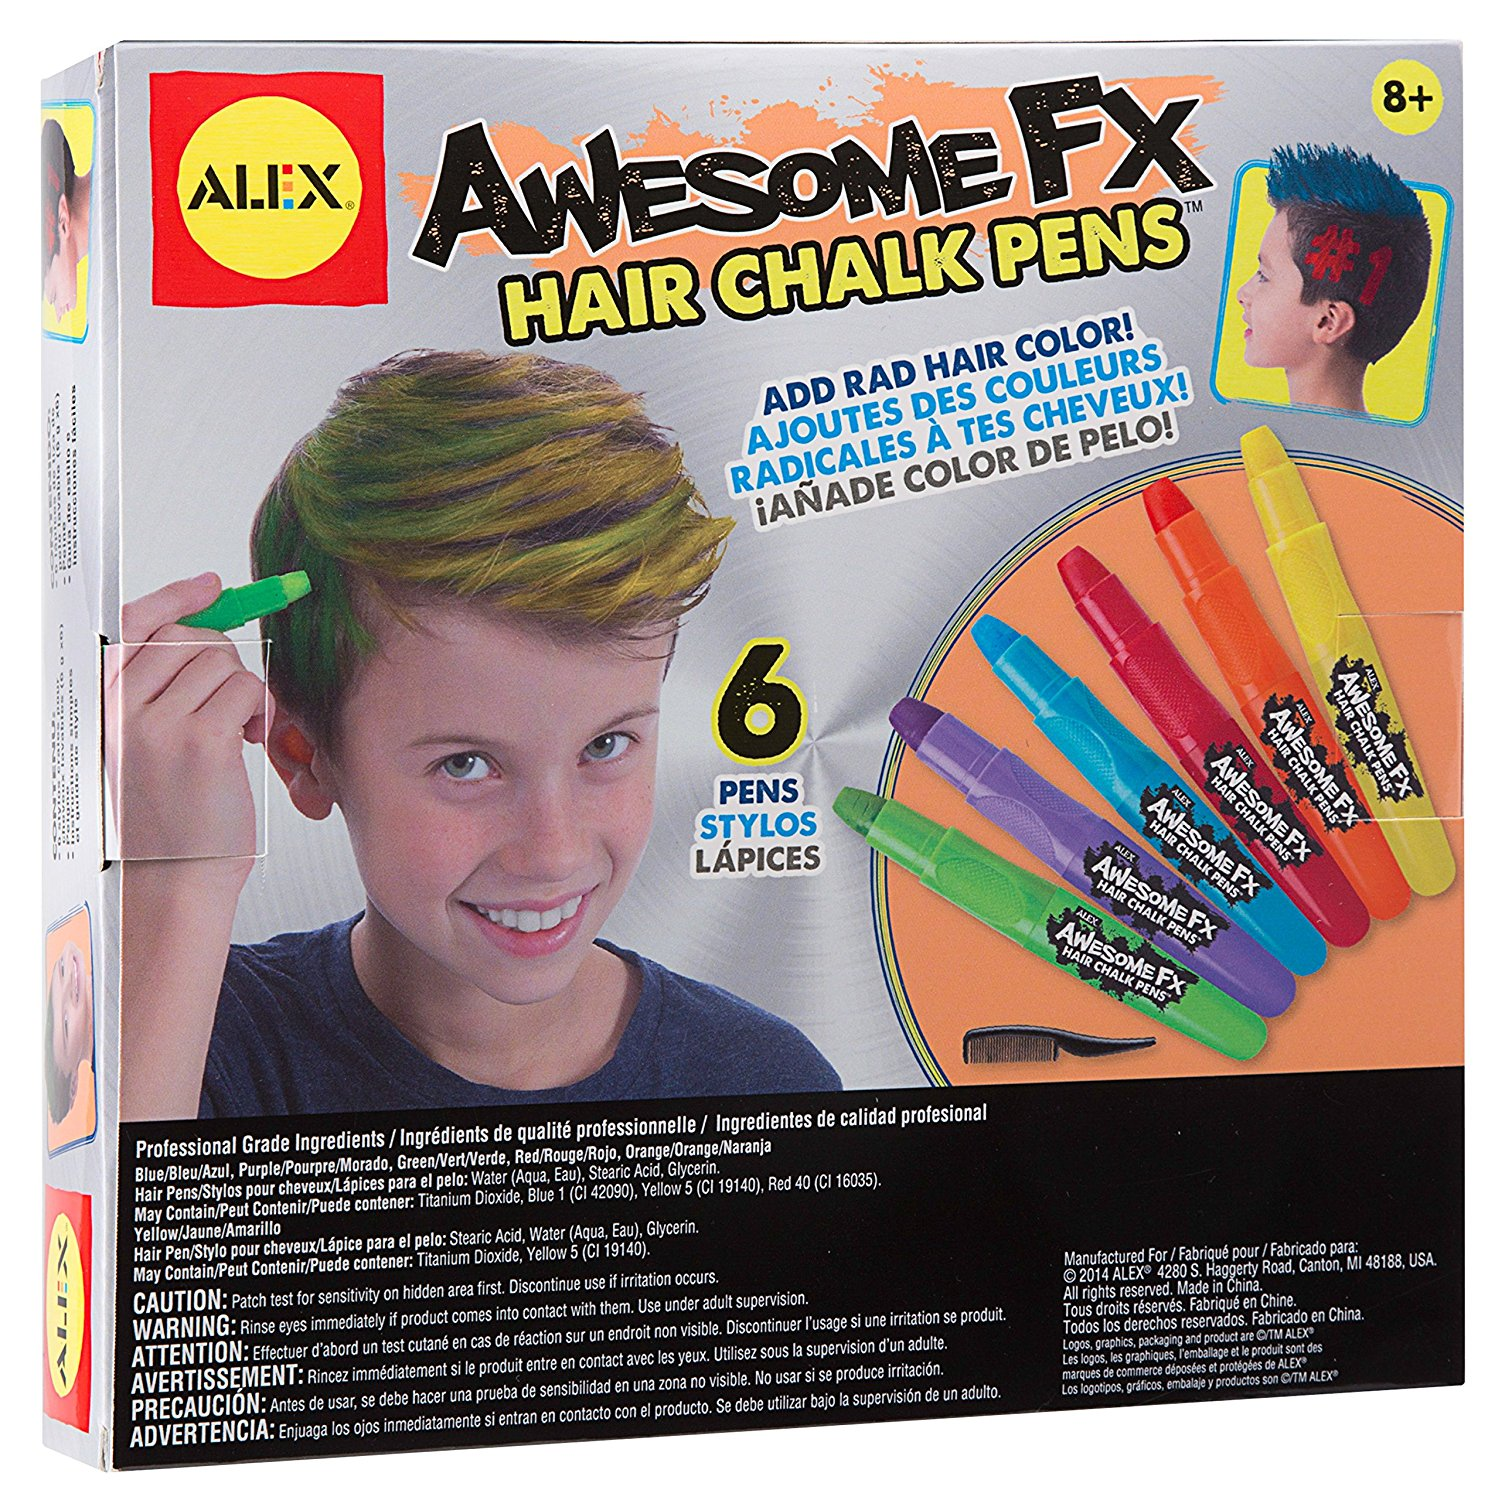 Guy Gear Awesome Fx Hair Chalk Pens Duct Spa Lites Cuffs Awesome My